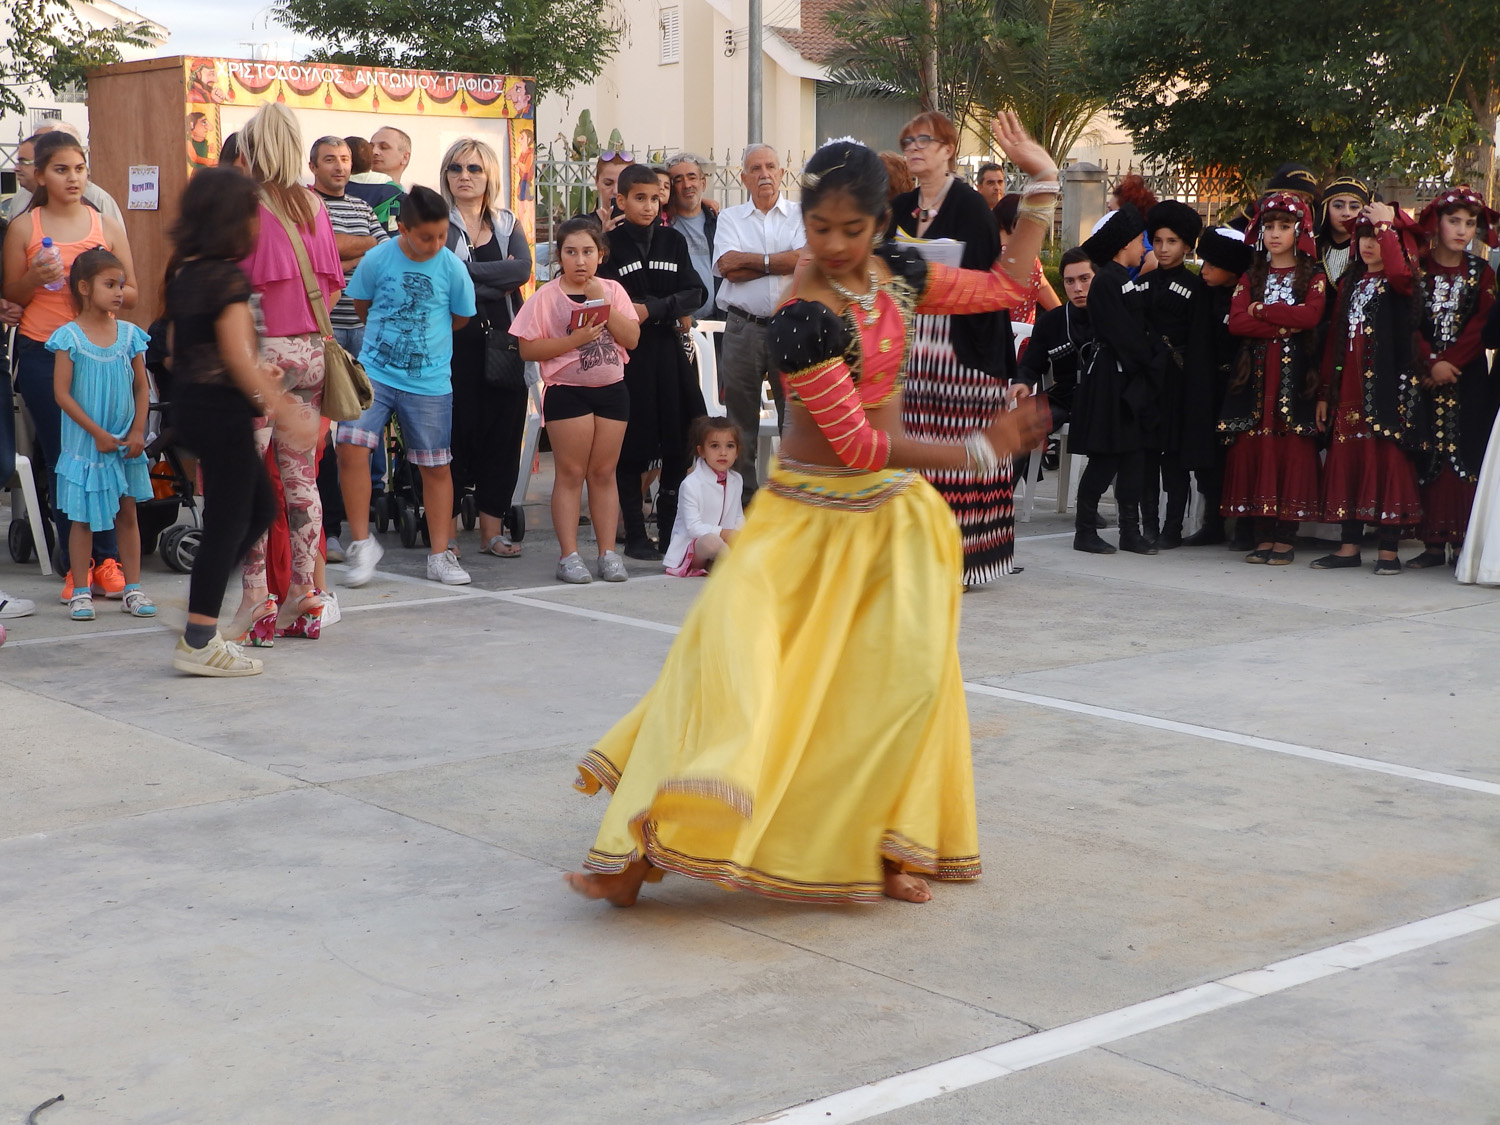 multicultural_Childrens_Festival_Ayios_Dhometios28516_22